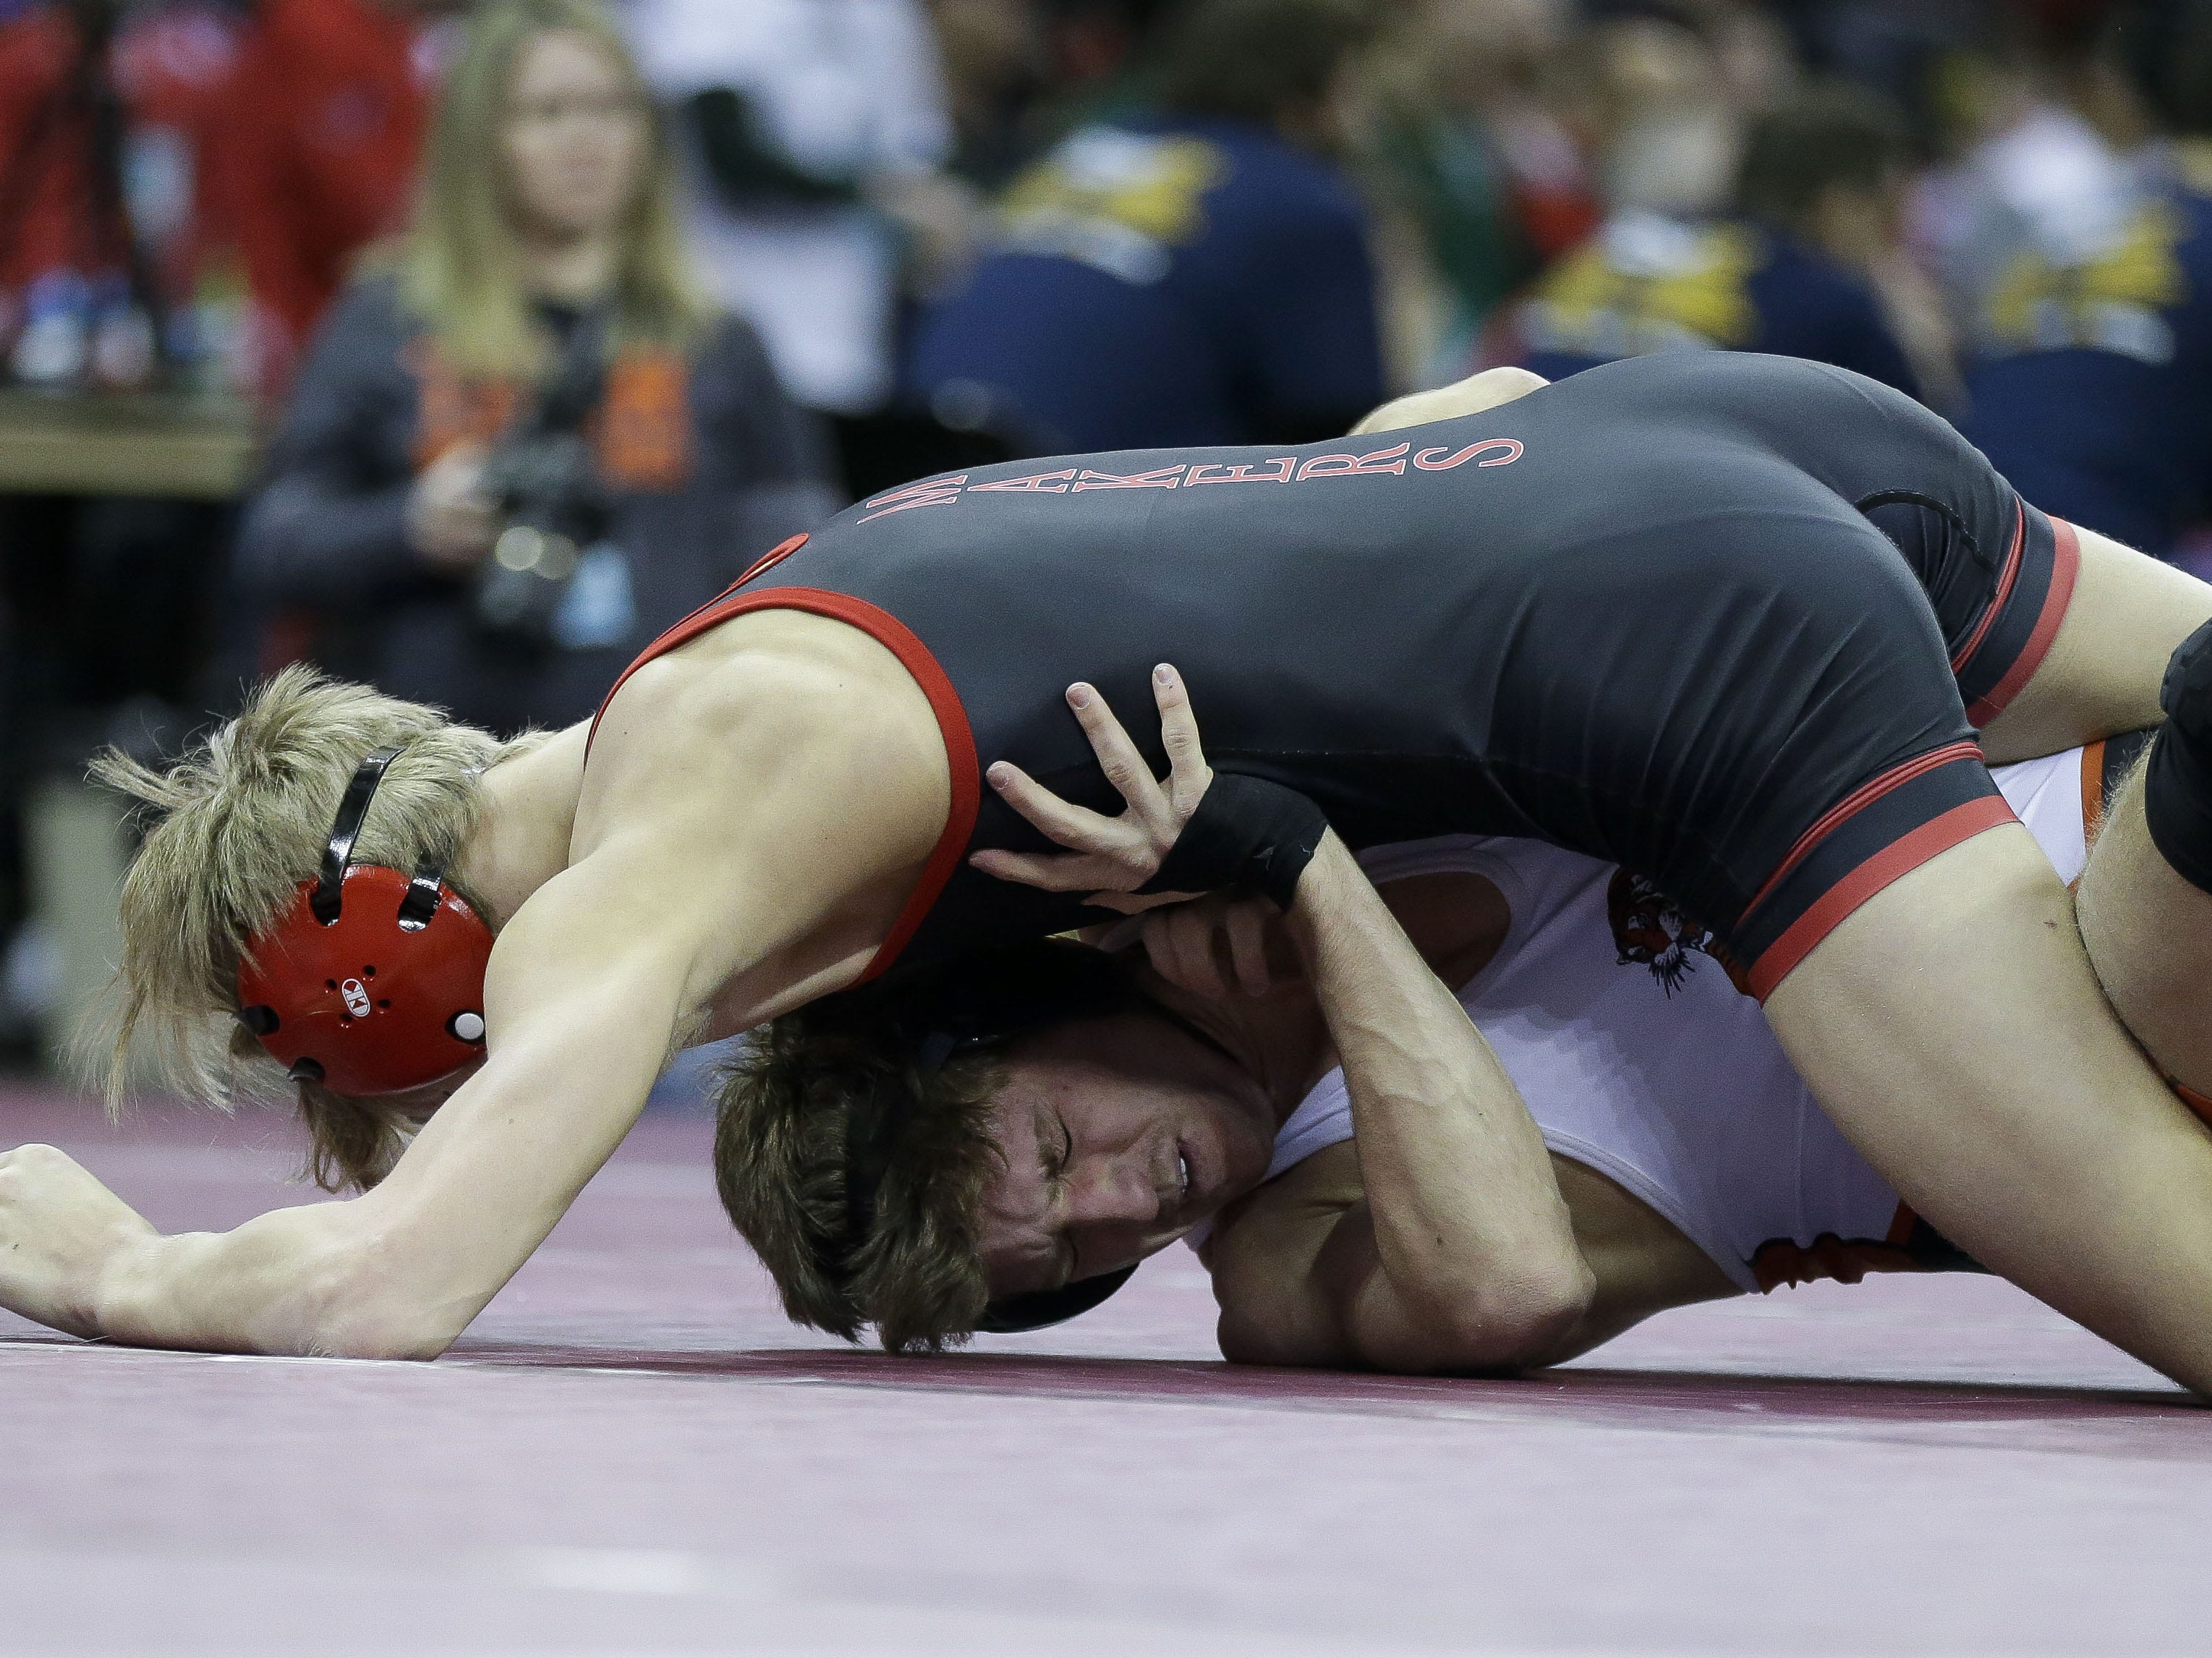 Marshfield's Caden Pearce scrambles against Kimberly's Tucker Smith in a Division 1 145-pound preliminary match during the WIAA state wrestling tournament on Thursday, February 21, 2019, at the Kohl Center in Madison, Wis. Tork Mason/USA TODAY NETWORK-Wisconsin